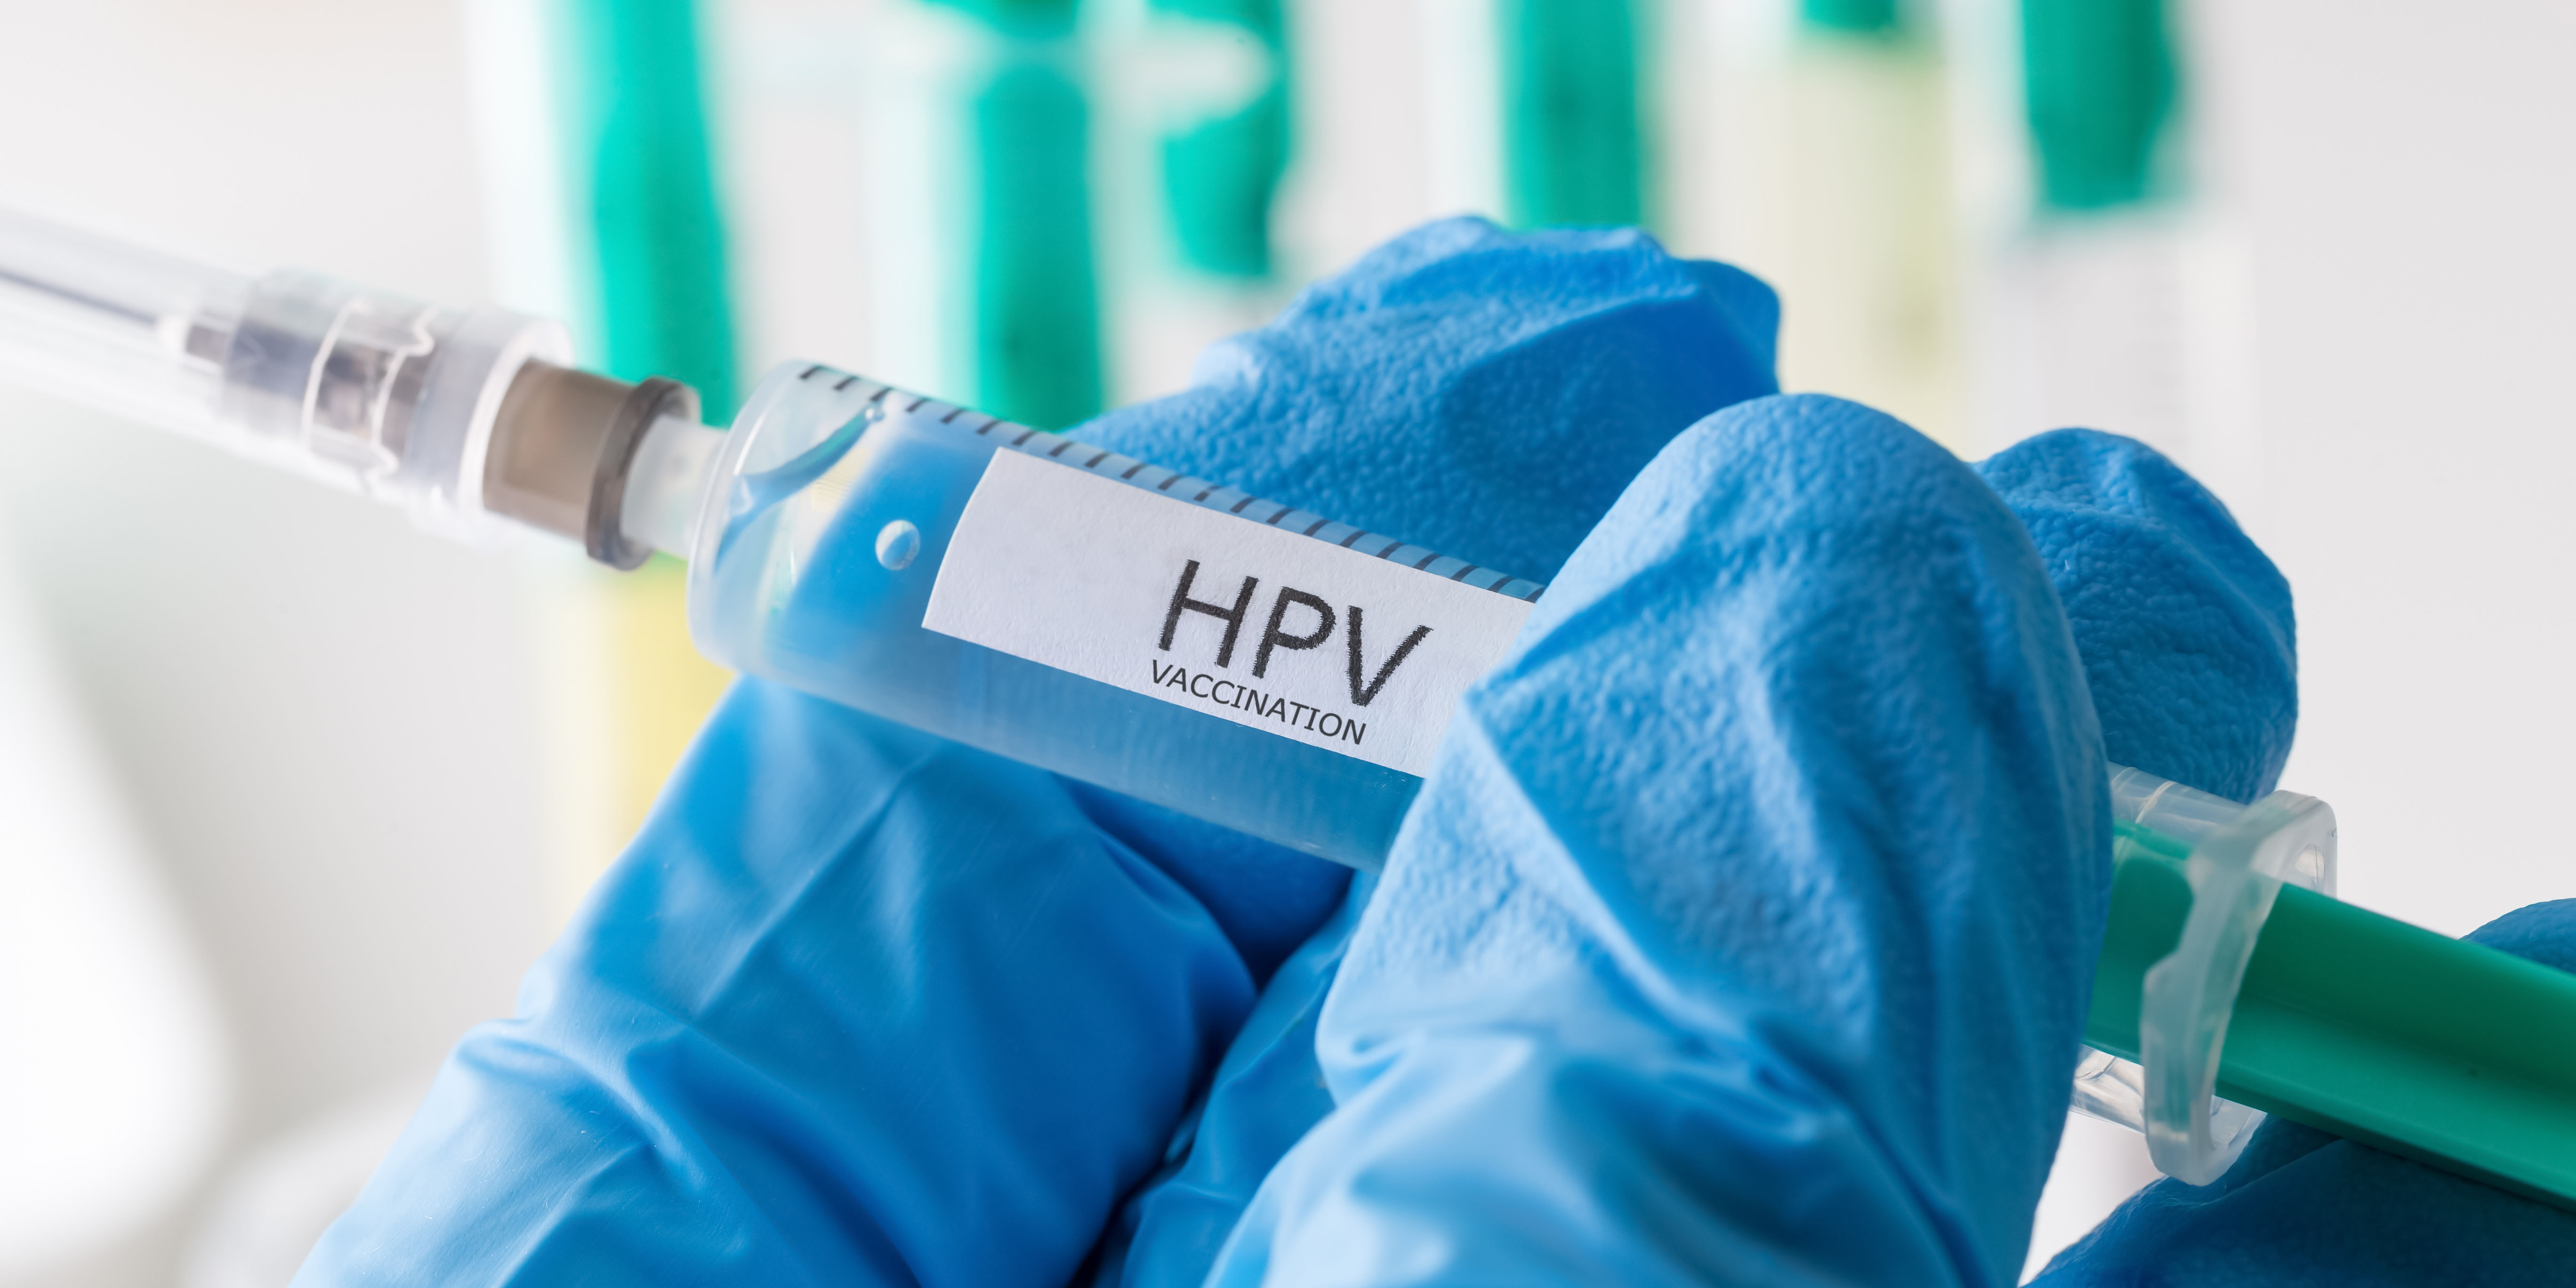 Tell FDA: Don't Allow HPV to be Marketed to Adults